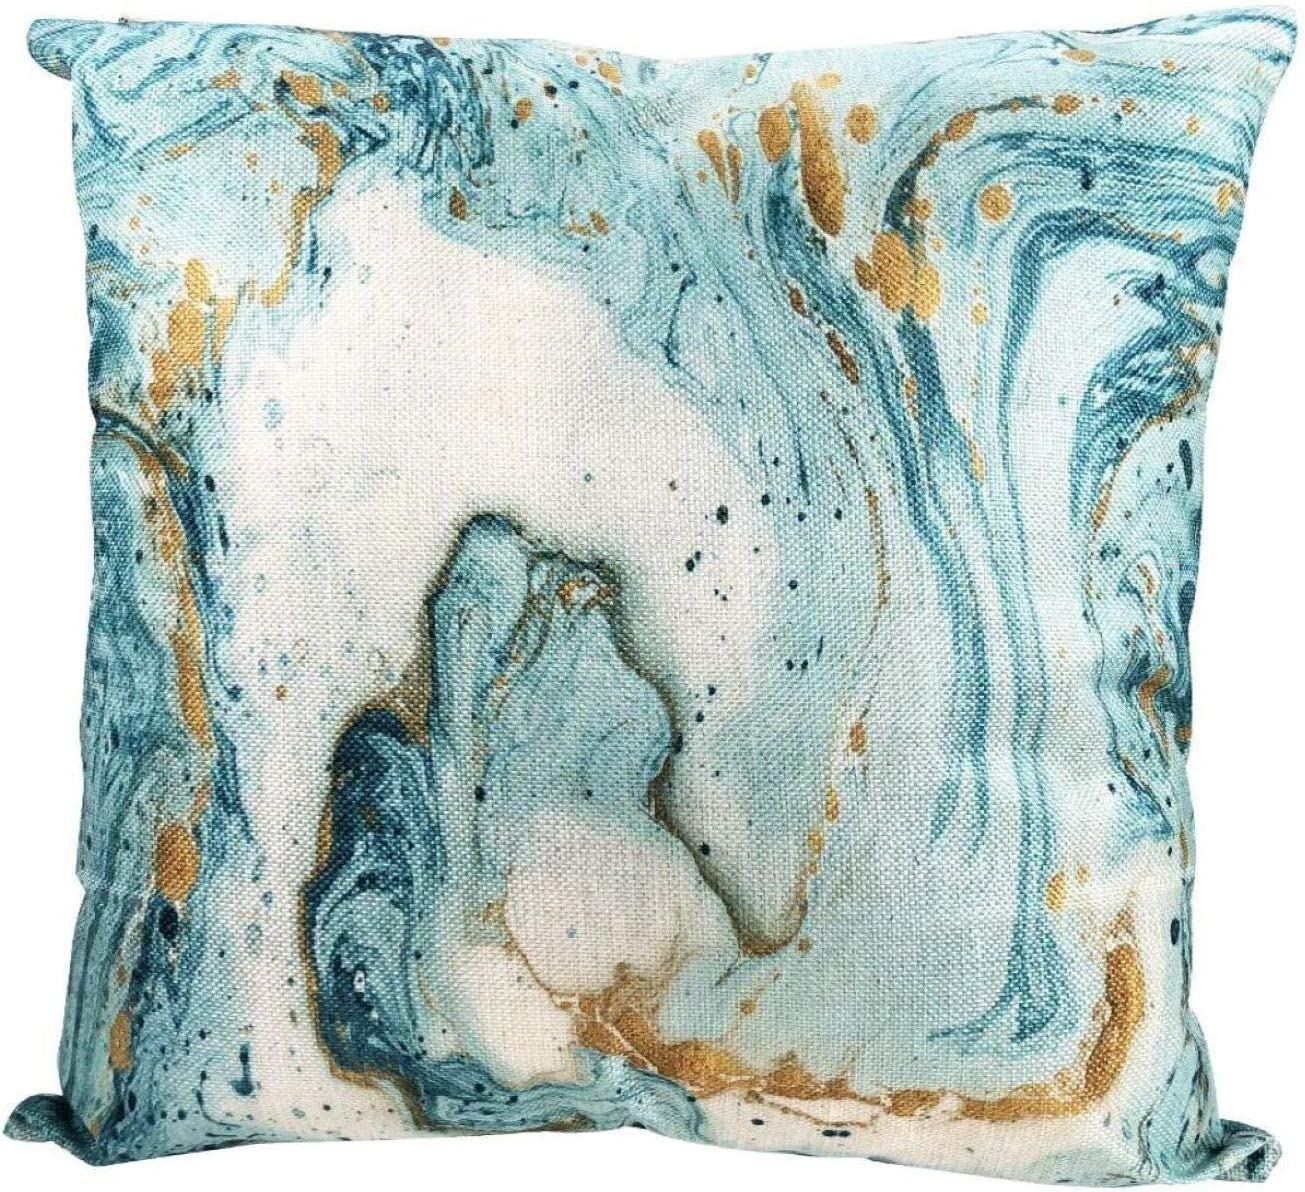 """PILLOW COVER Teal Blue White Abstract Art Home Decor Marble Cushion Case 18x18/"""""""